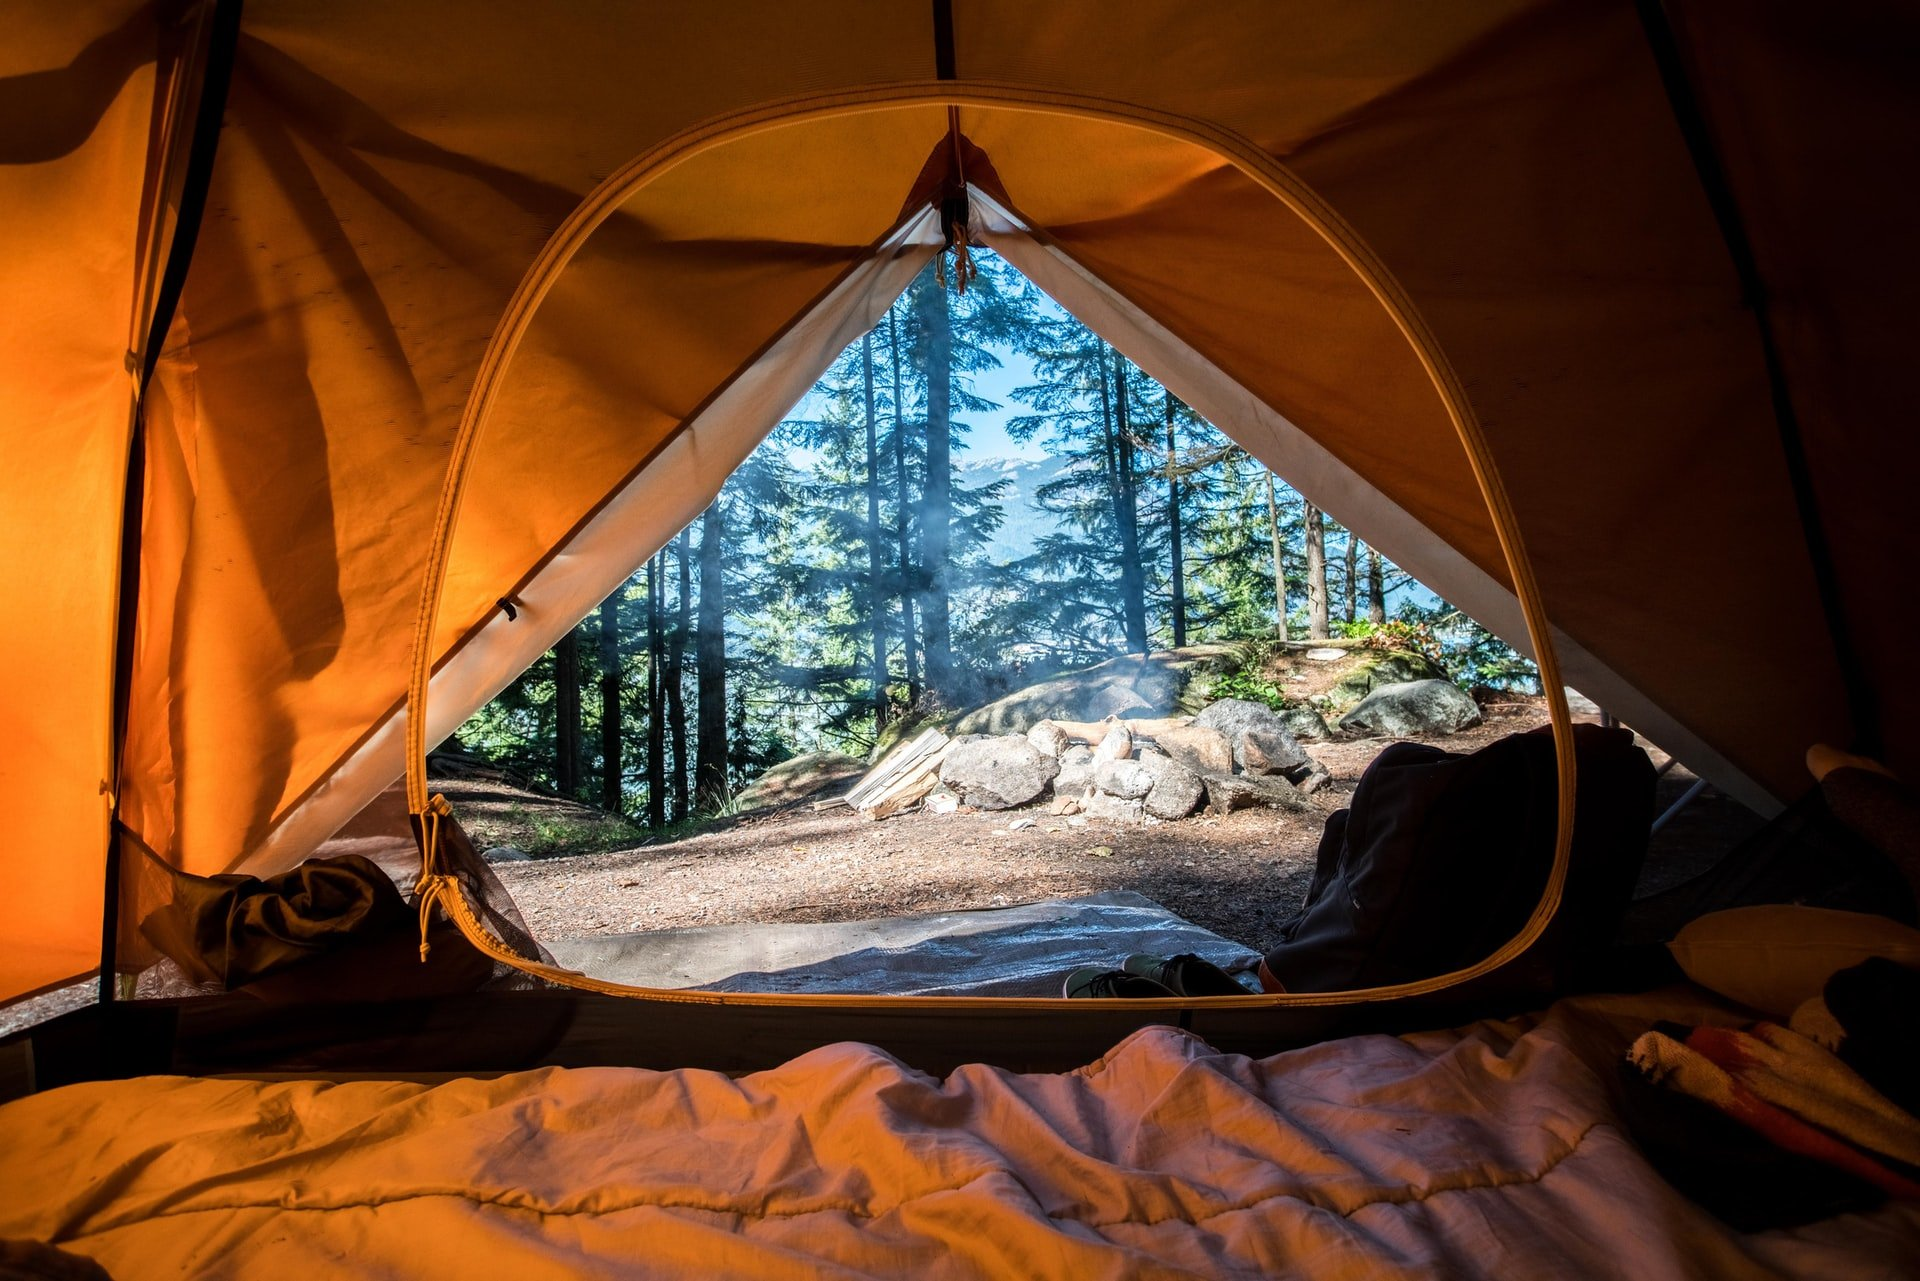 How to explore the outdoors and leave no trace behind